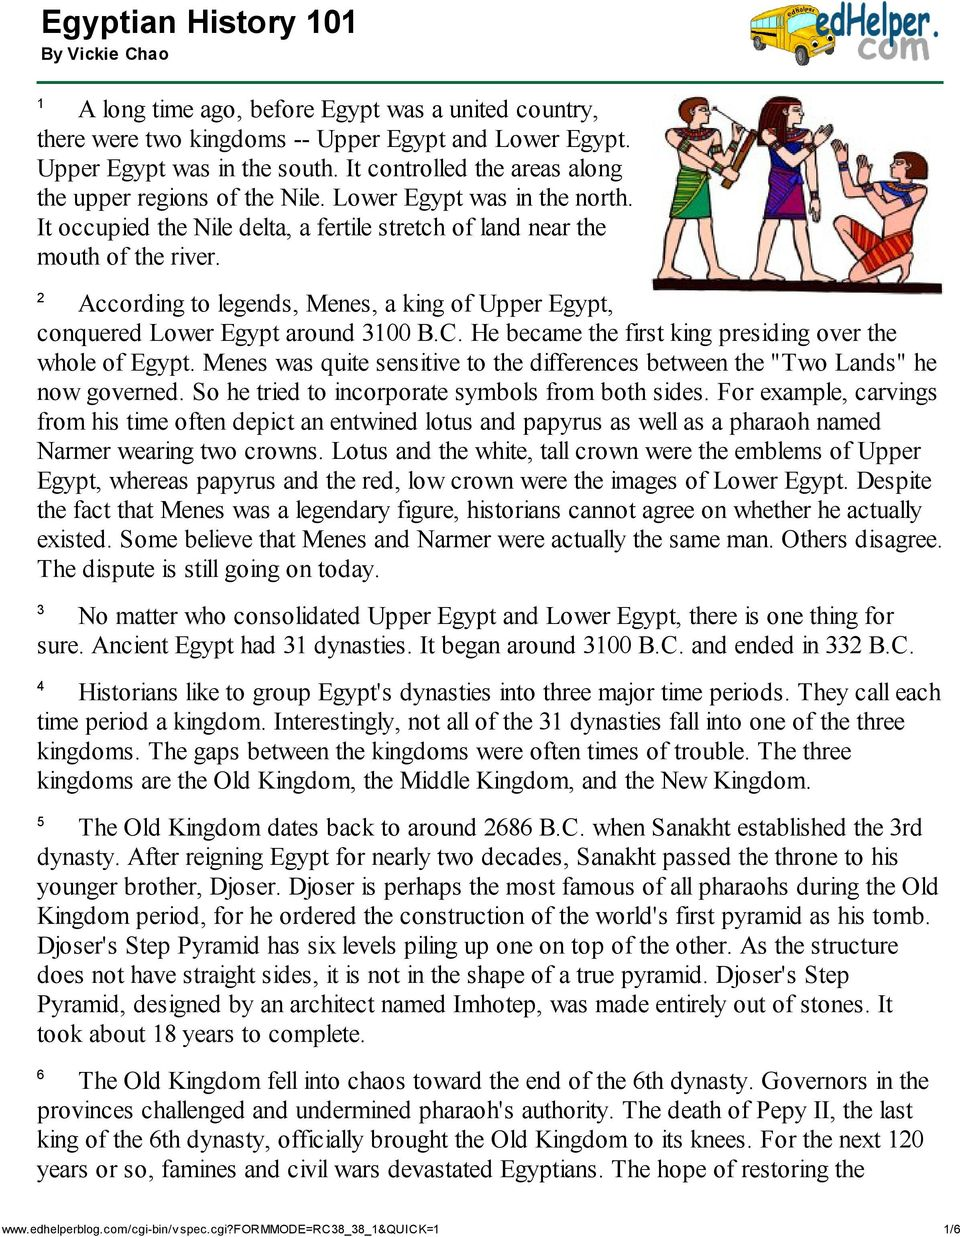 Egyptian History 101 By Vickie Chao Pdf Six Kingdoms Worksheet